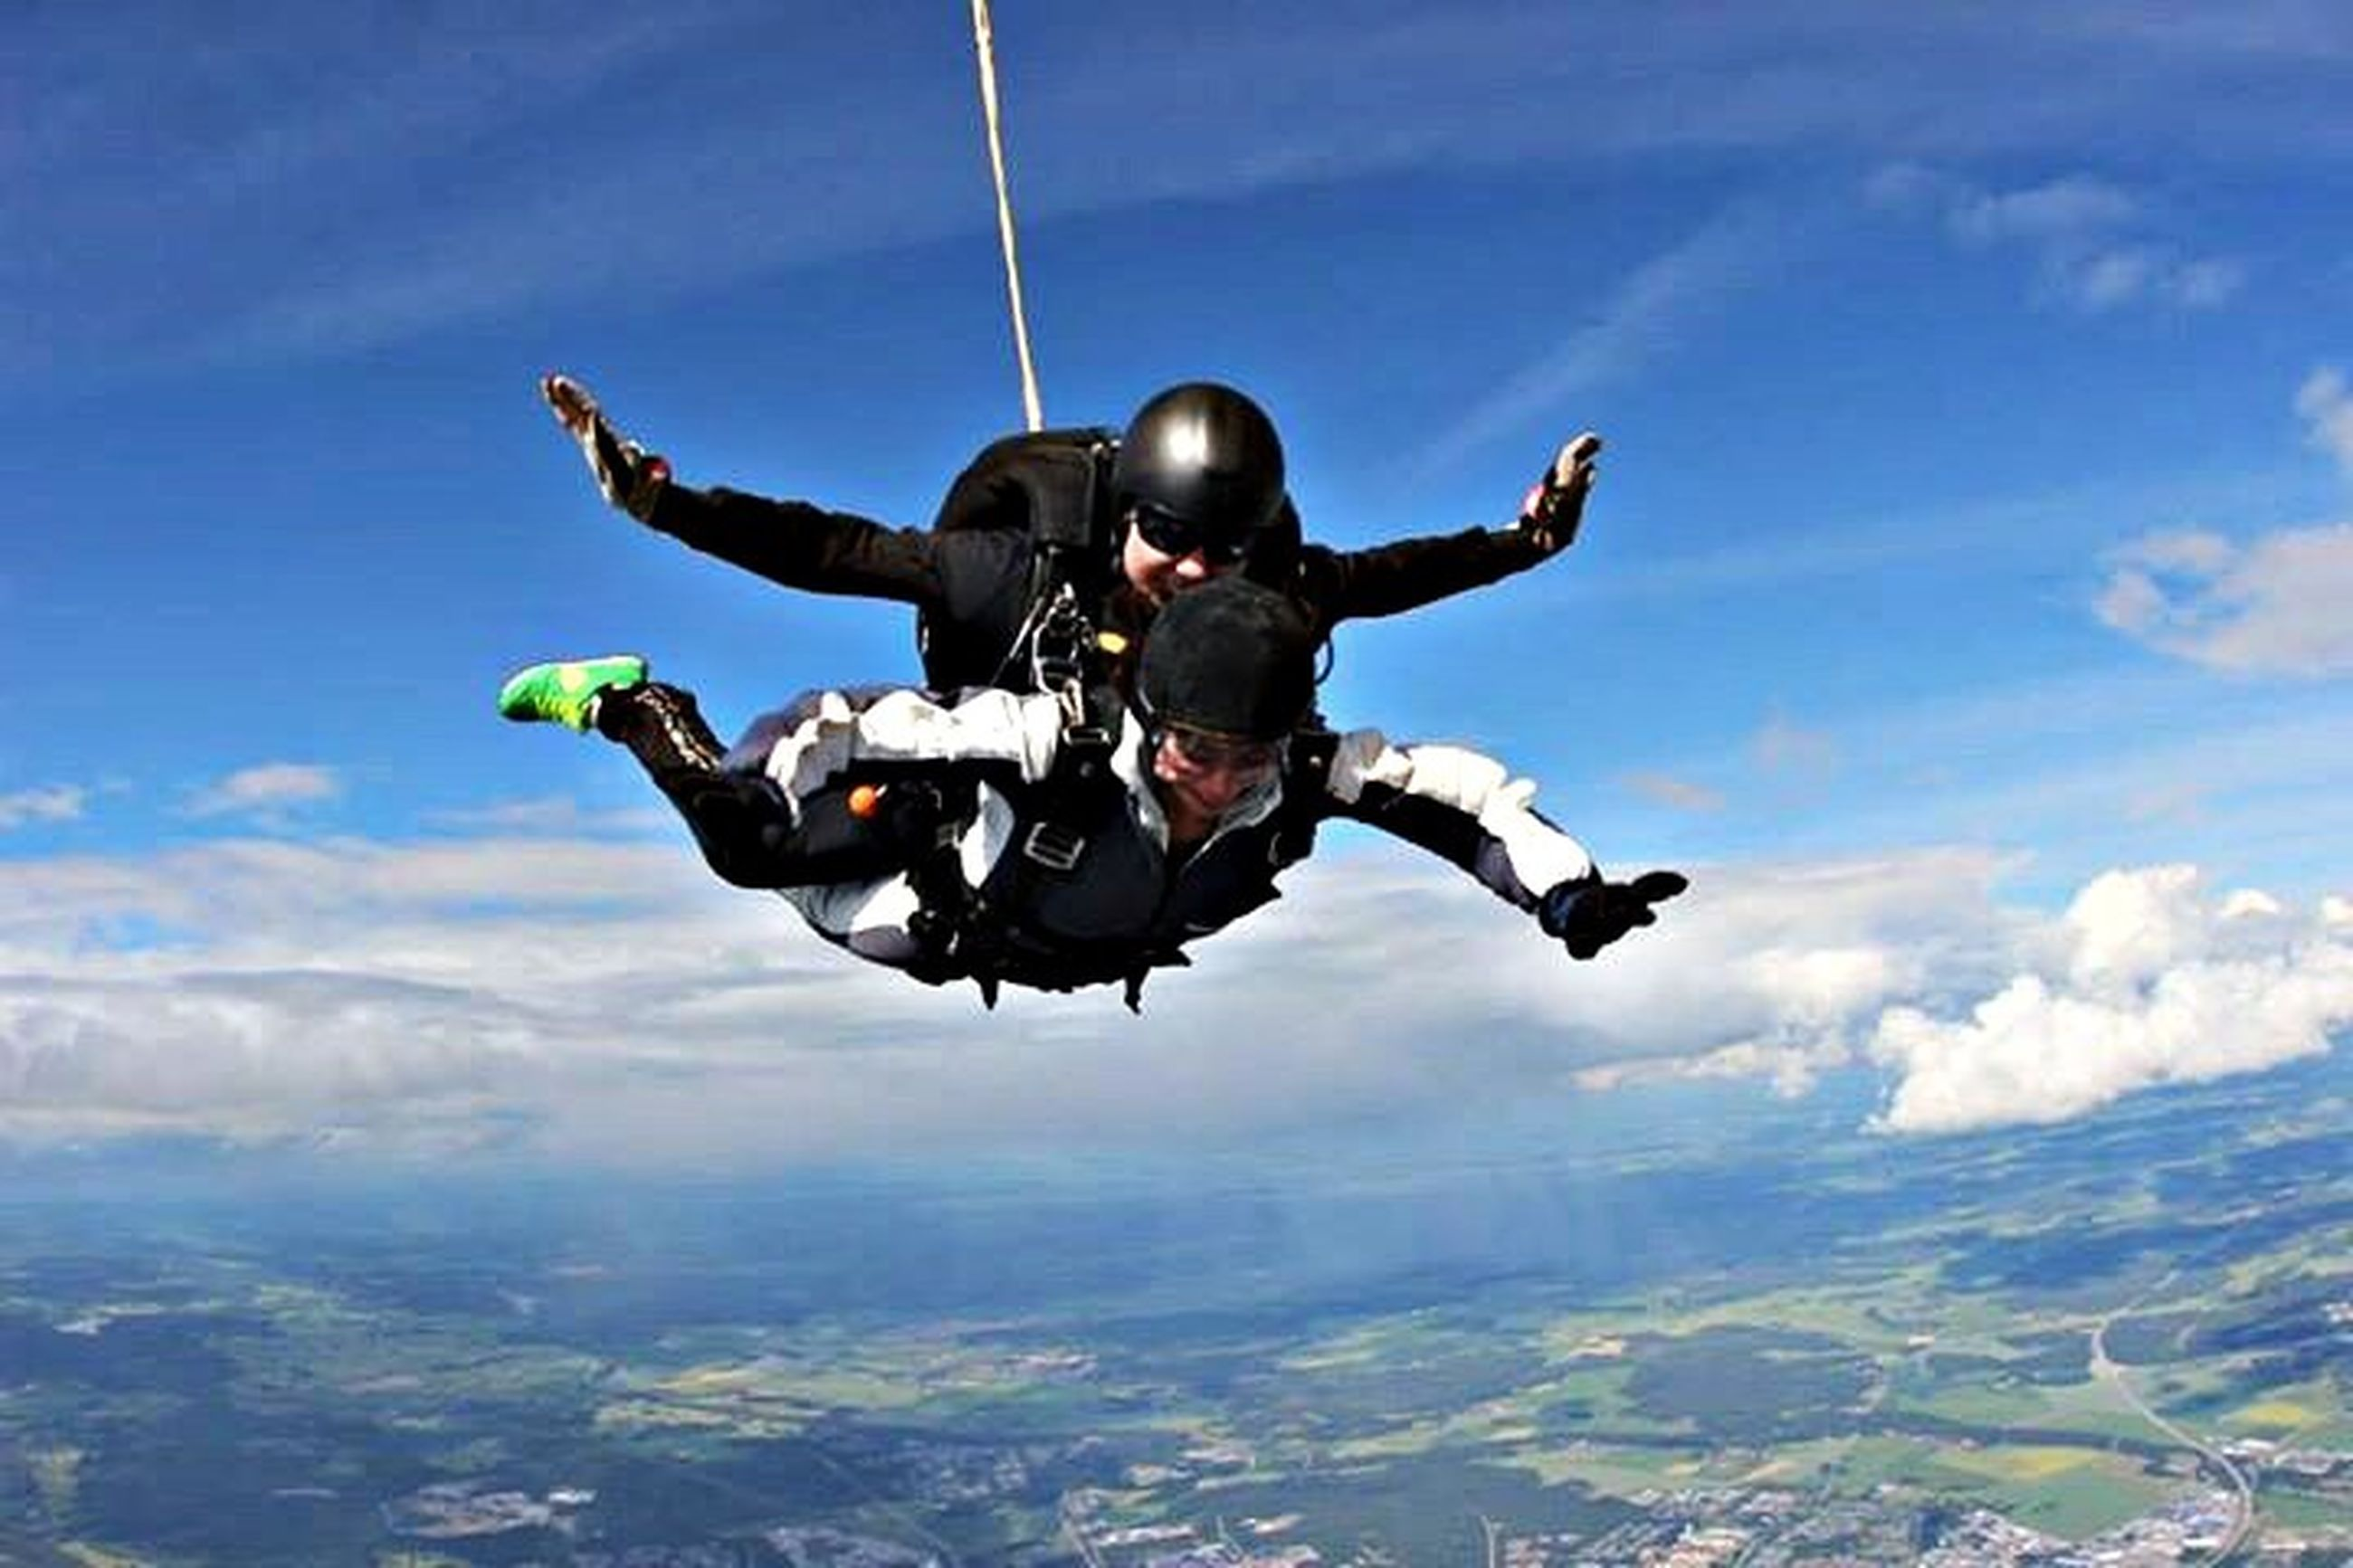 mid-air, sky, leisure activity, low angle view, lifestyles, extreme sports, adventure, cloud - sky, full length, fun, men, sport, freedom, flying, skill, enjoyment, jumping, travel, transportation